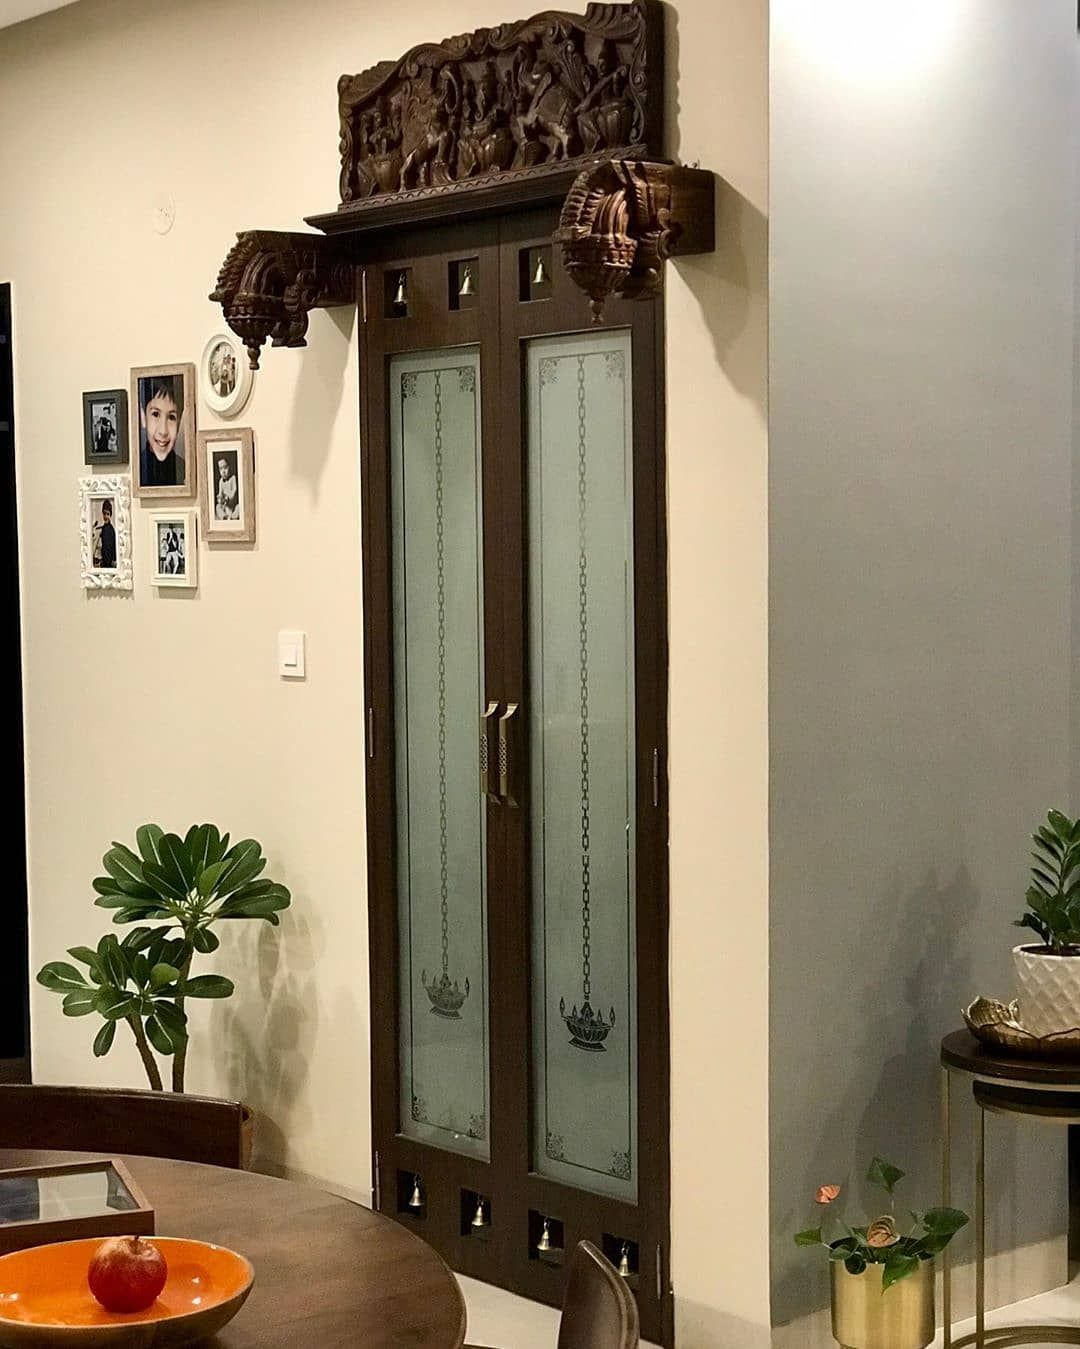 Join Us On A Home Decor Journey As We Take You Through Beautiful Homes Around The World Proud Ho Pooja Room Door Design Home Door Design Pooja Room Design